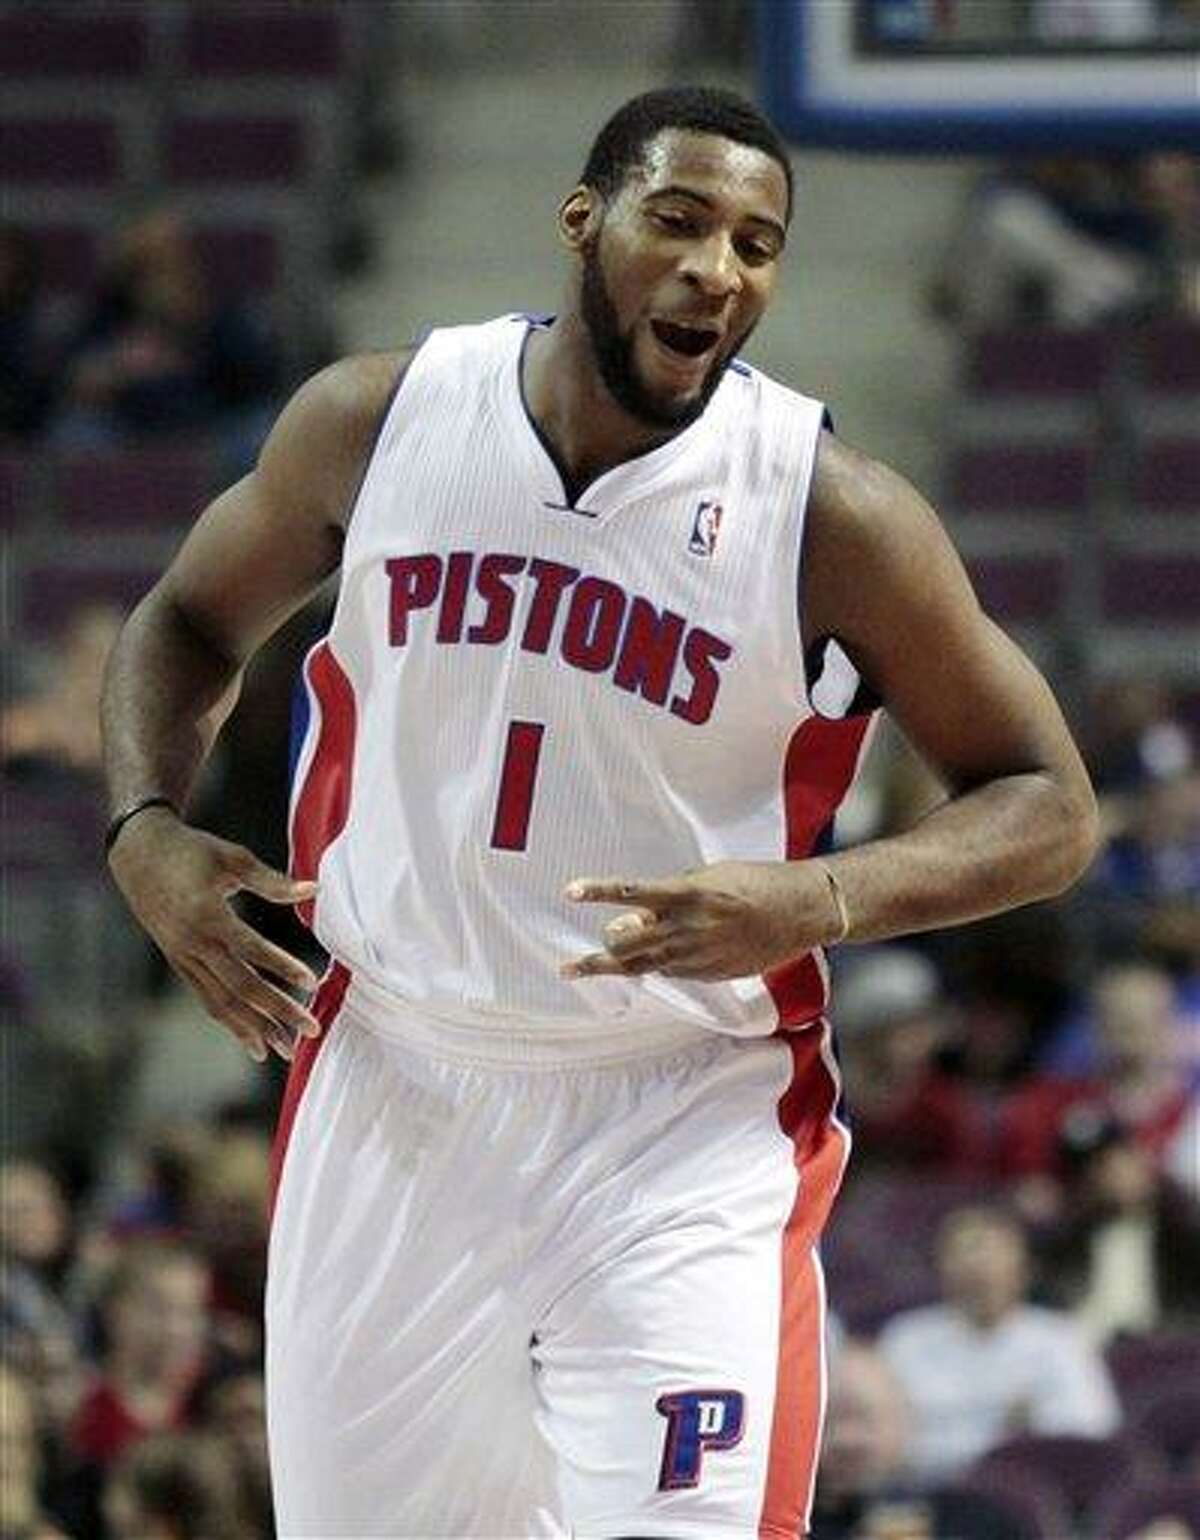 Detroit Pistons' Andre Drummond reacts after a three-point basket by teammate Jonas Jerebko during the first half of an NBA basketball game against the Orlando Magic, Tuesday, Oct. 16, 2012, in Auburn Hills, Mich. (AP Photo/Duane Burleson)